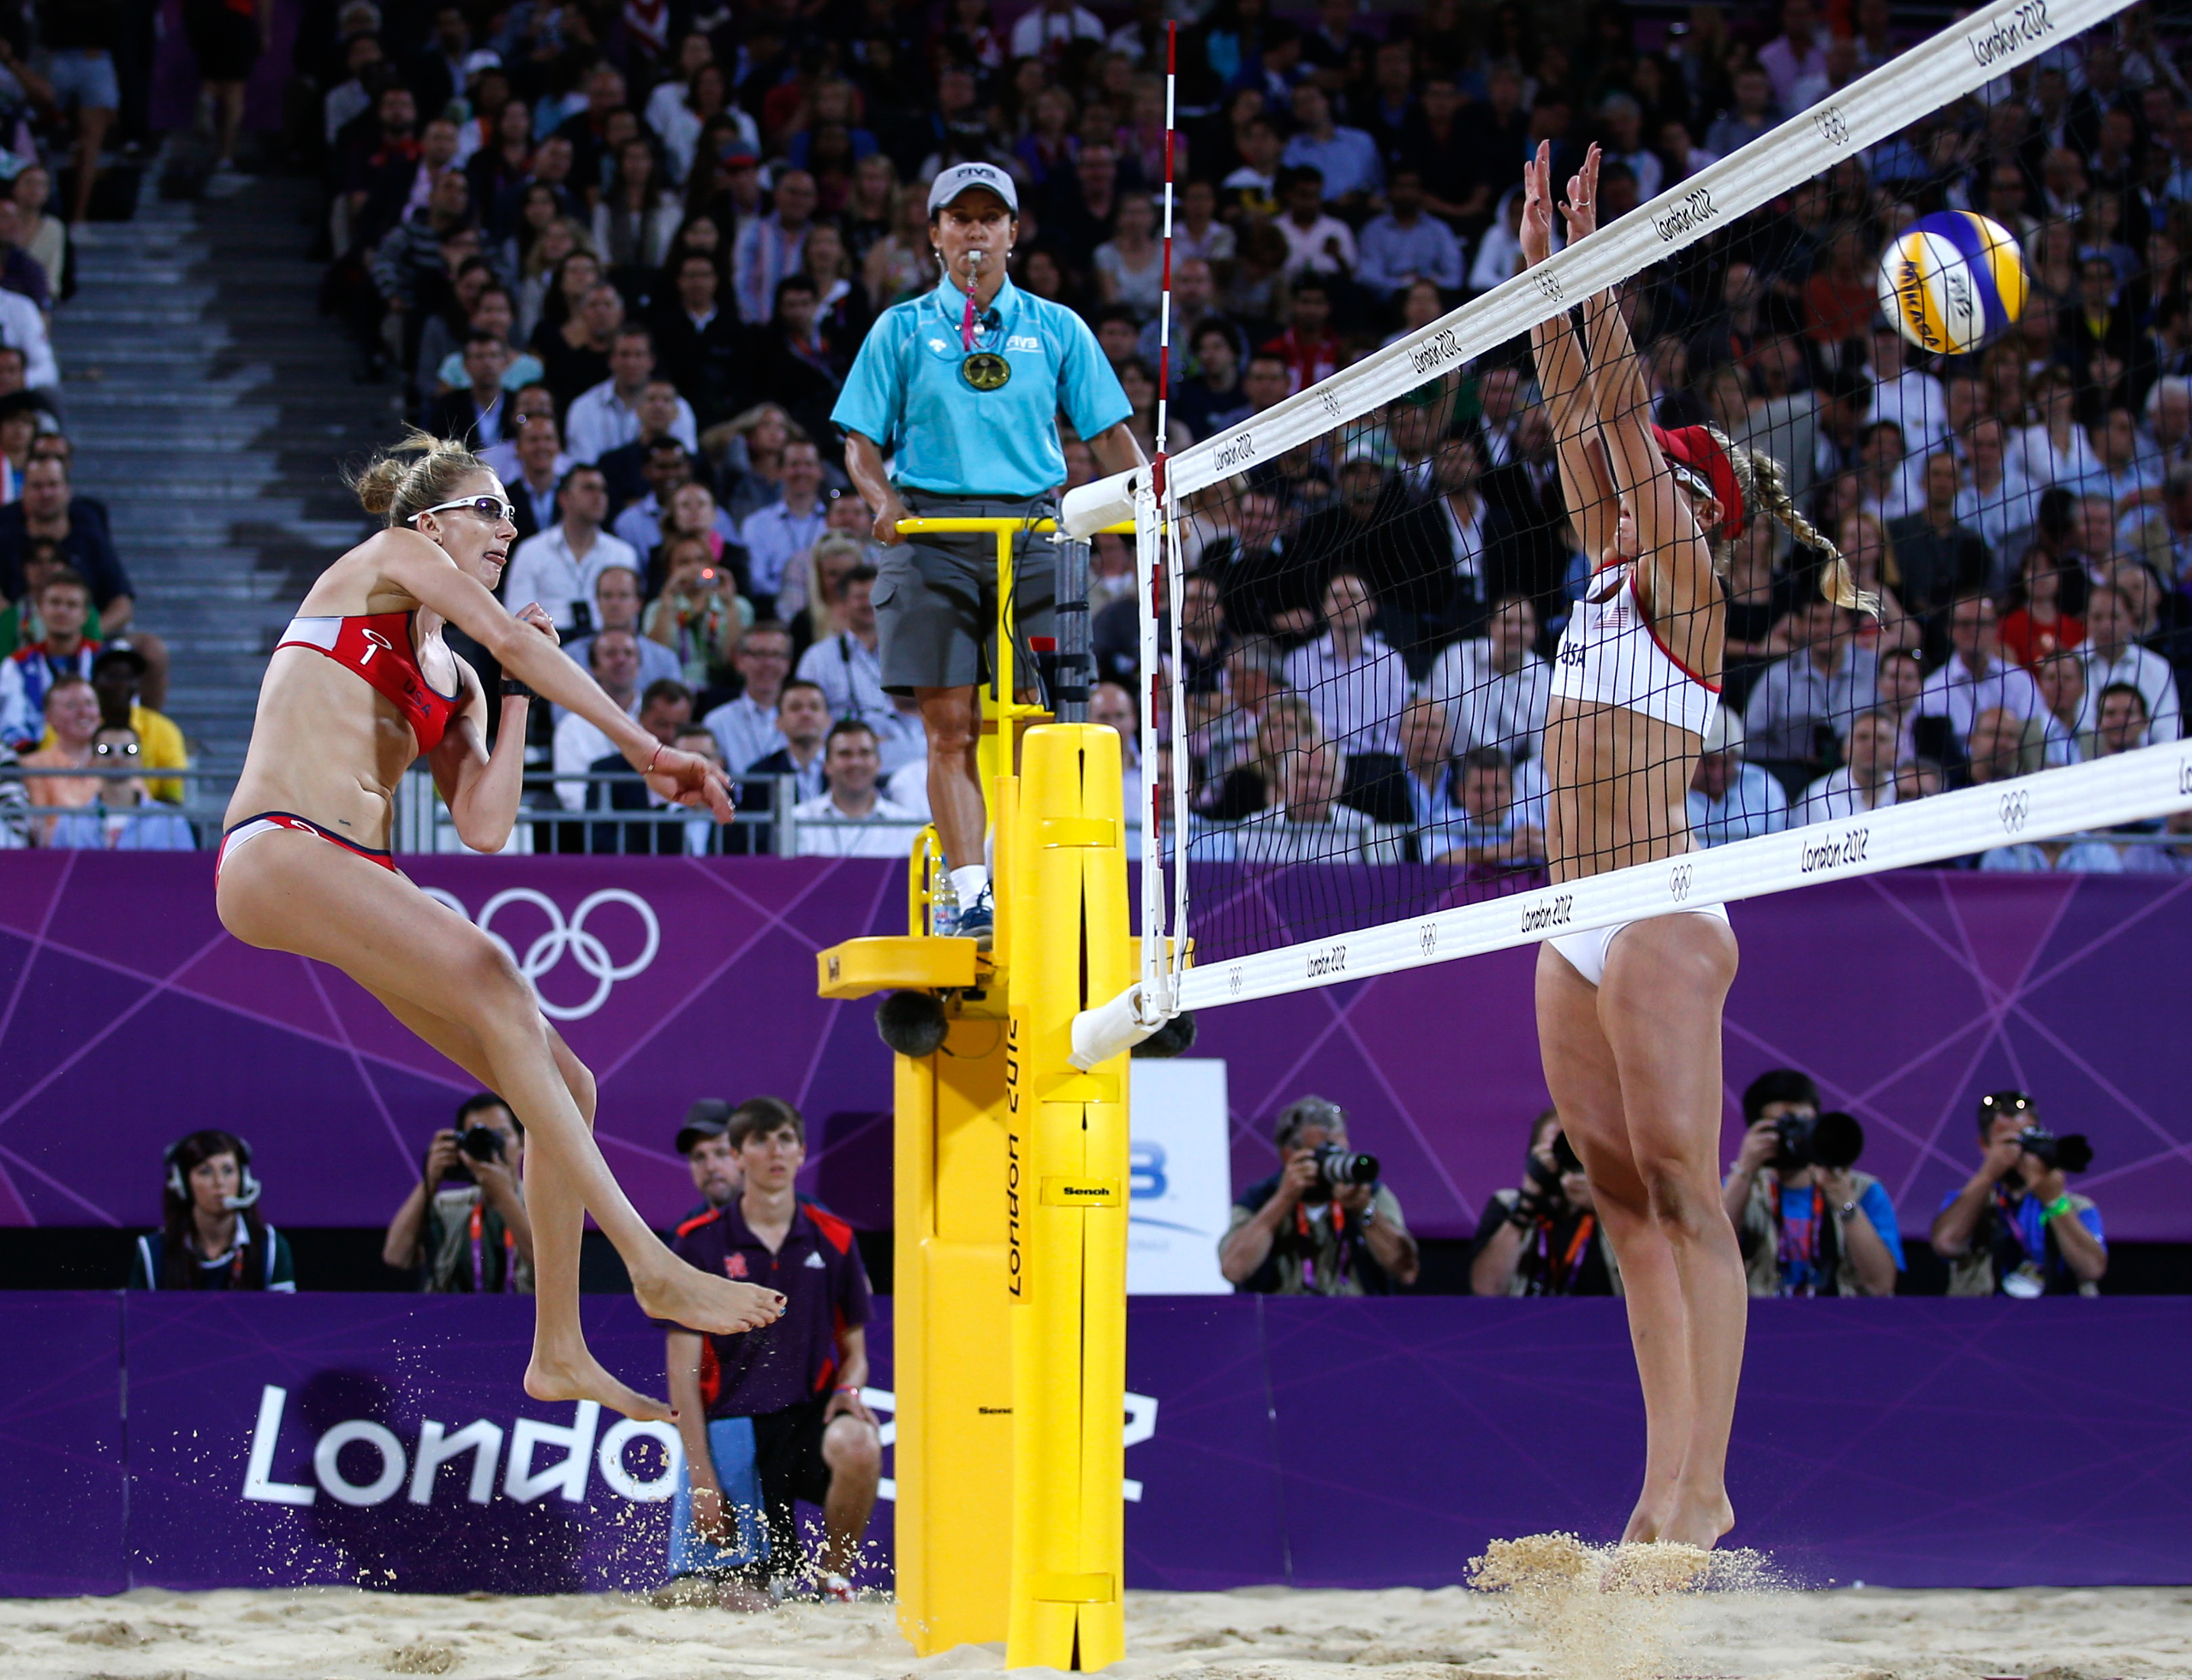 """<strong>Kerri Walsh Jennings and April Ross, Beach Volleyball, USA</strong>                                   Americans Walsh Jennings and her longtime partner Misty May-Treanor won a record three Olympic golds in beach volleyball. But after May-Treanor retired, Walsh Jennings linked up with Ross, whom she beat in the 2012 gold medal match, in her quest for number four. To get it, they'll have to outplay the elite Brazilians teams of  Larissa and Talita, and Barbara and Agatha. The crowds for those matches on Copacabana Beach will be among the most raucous of the entire Games. """"I love Brazil's fans, even if they're not rooting for me,"""" Walsh Jennings tells TIME. """"They bring out our best."""""""